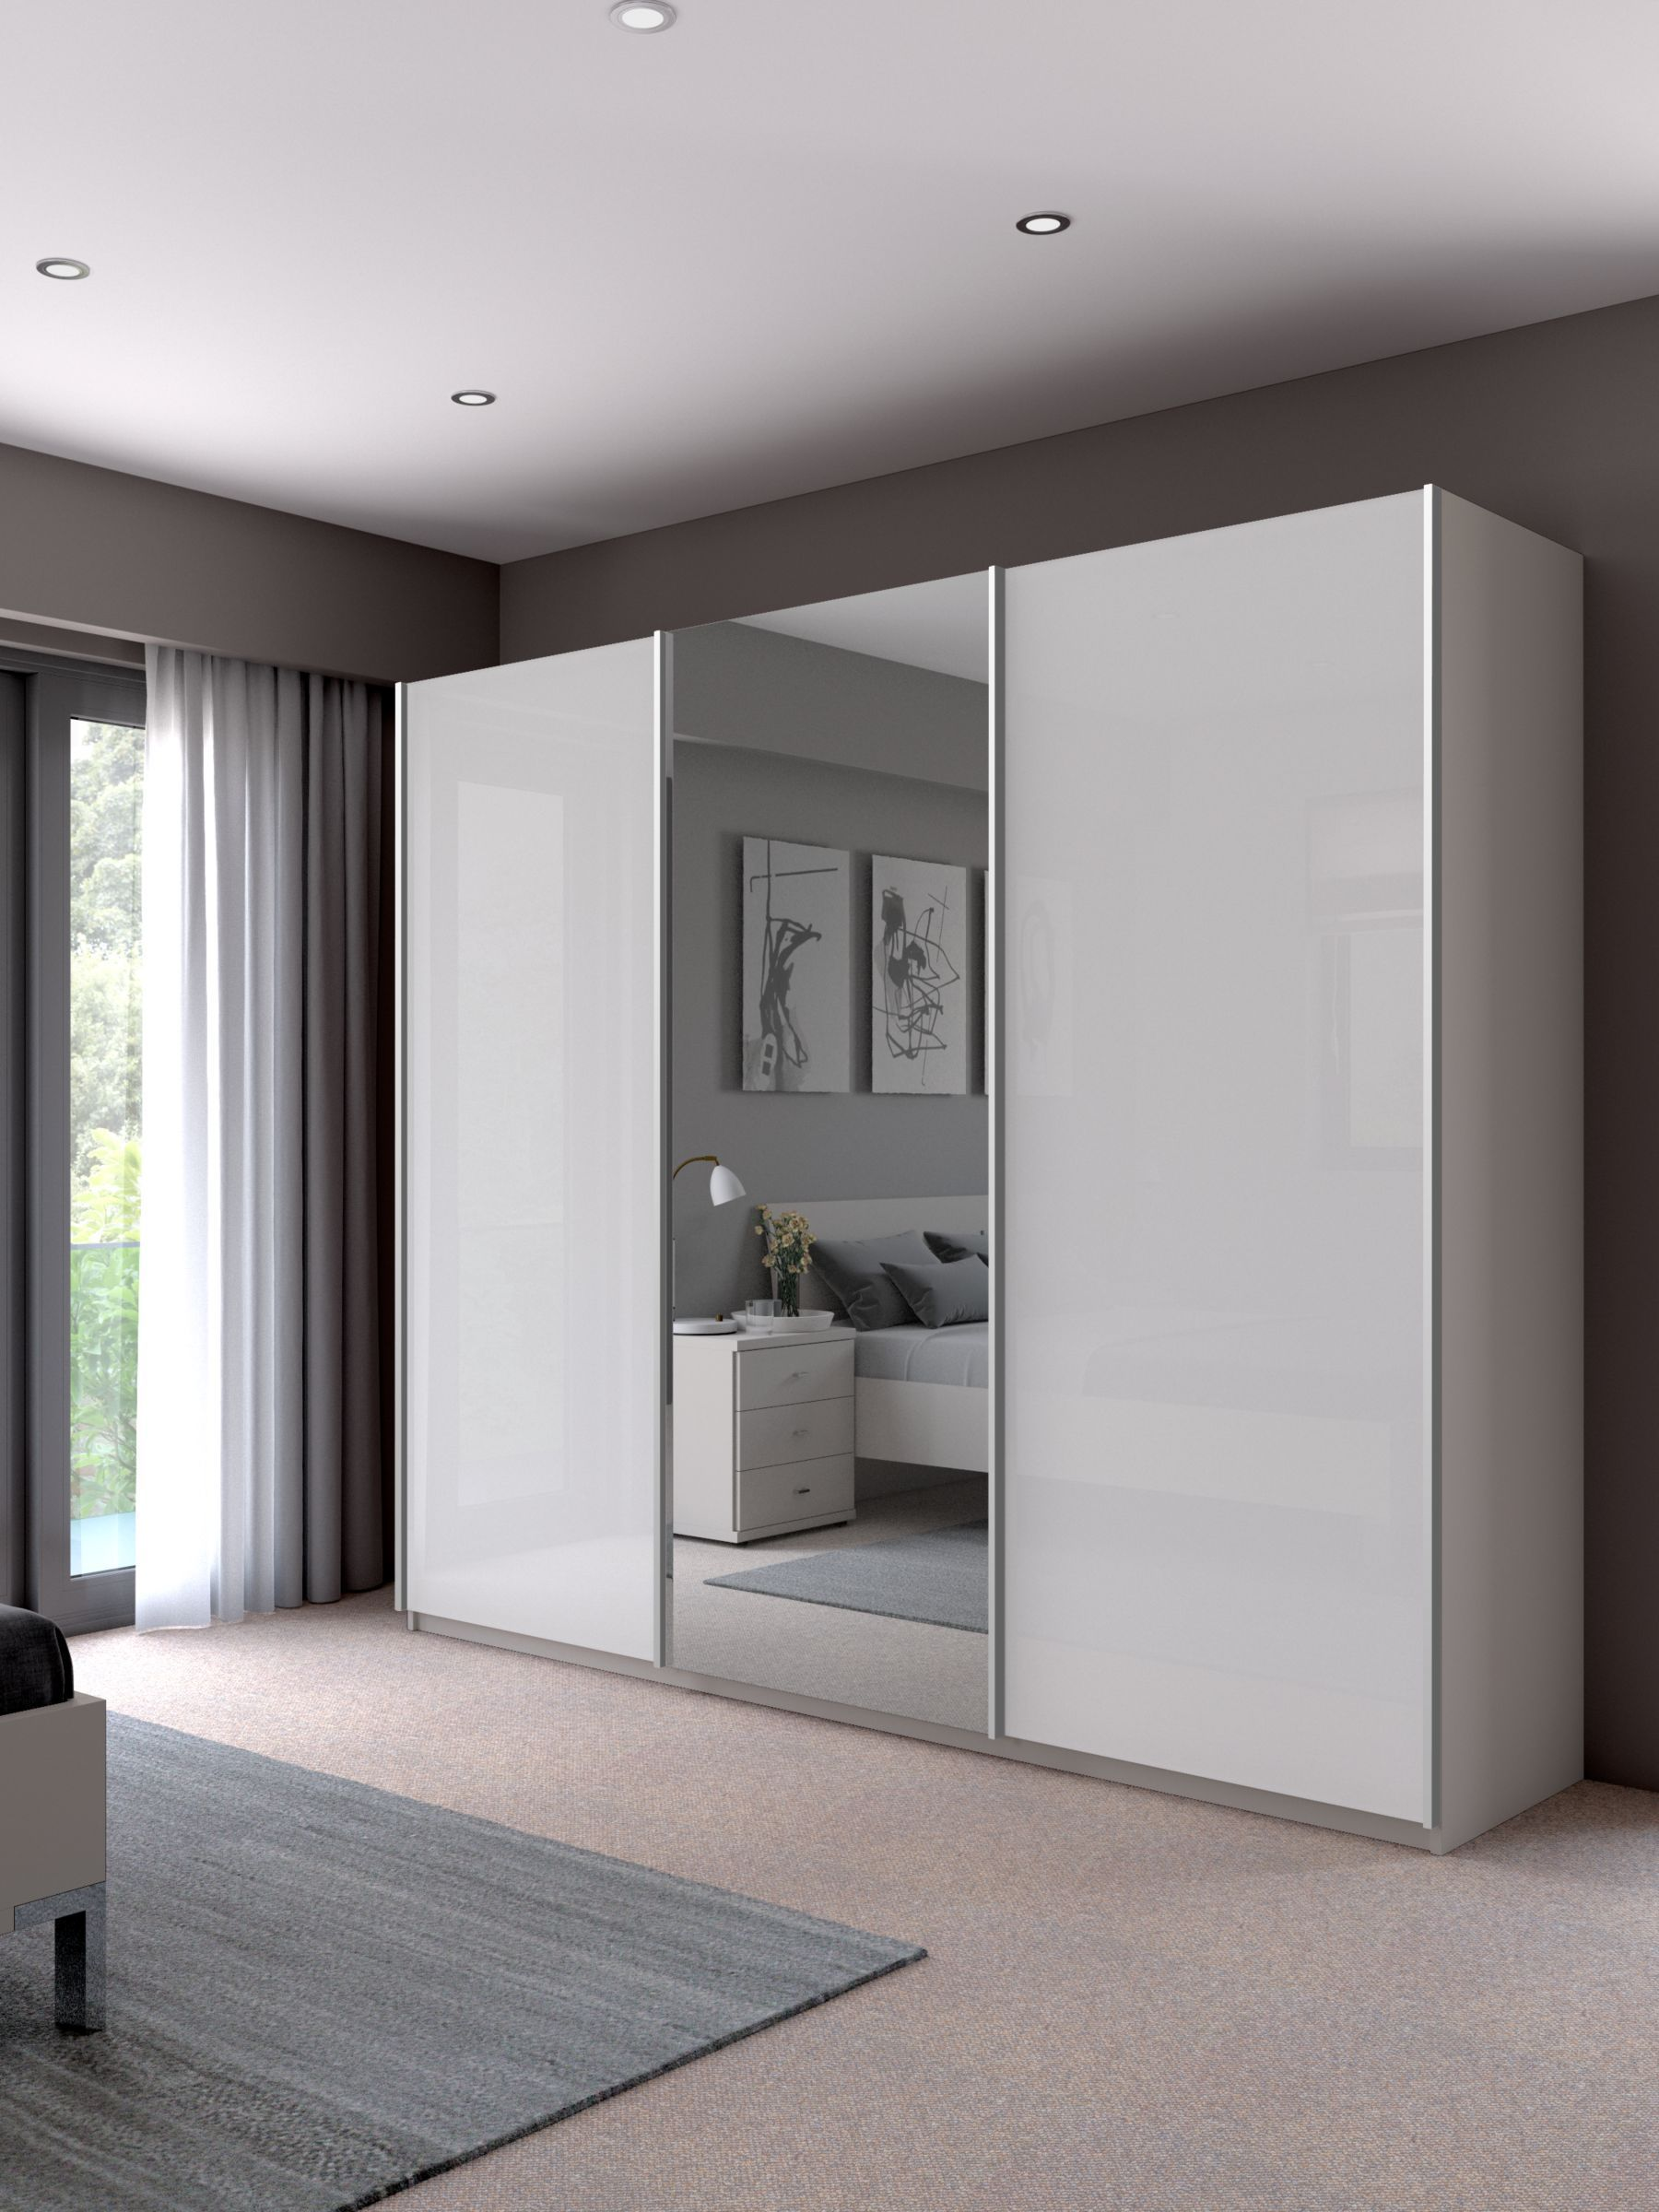 John Lewis Partners Elstra 250cm Wardrobe With Glass And Mirrored Sliding Doors White Glass Mat In 2020 Wardrobe Design Bedroom Wardrobe Door Designs Wardrobe Doors